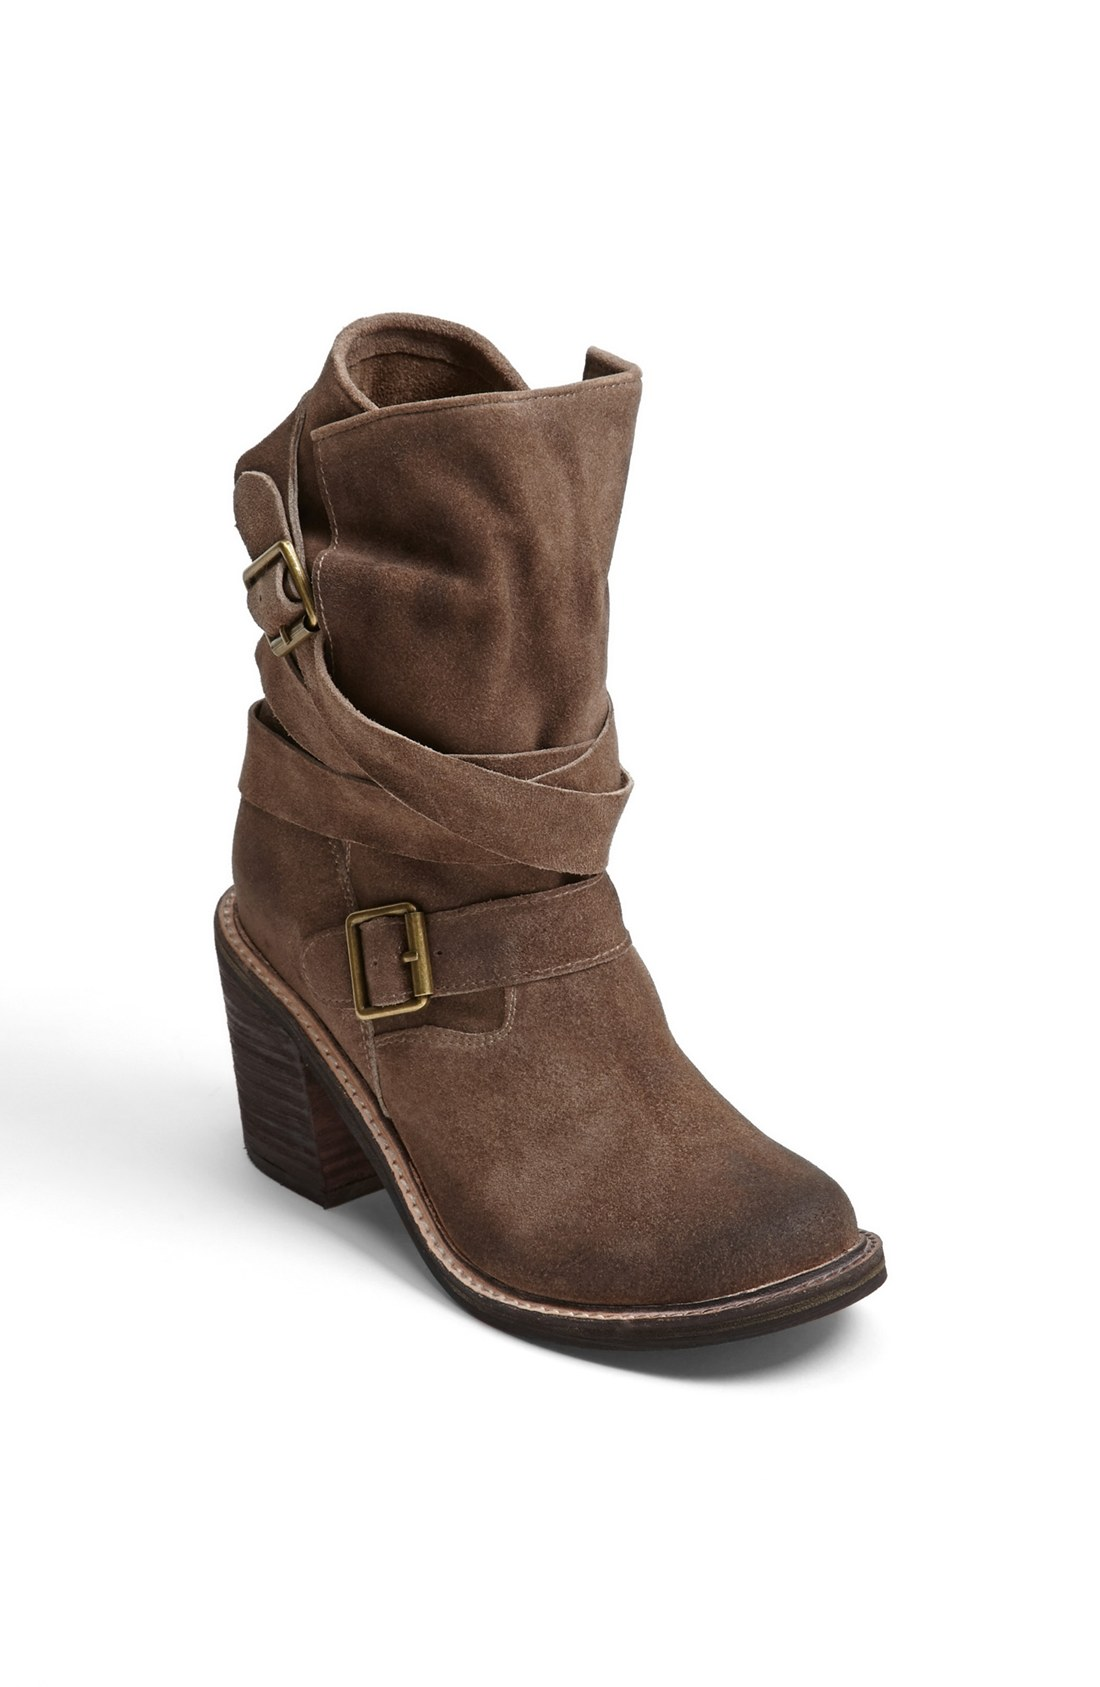 jeffrey campbell new france boot in gray grey distressed suede lyst. Black Bedroom Furniture Sets. Home Design Ideas